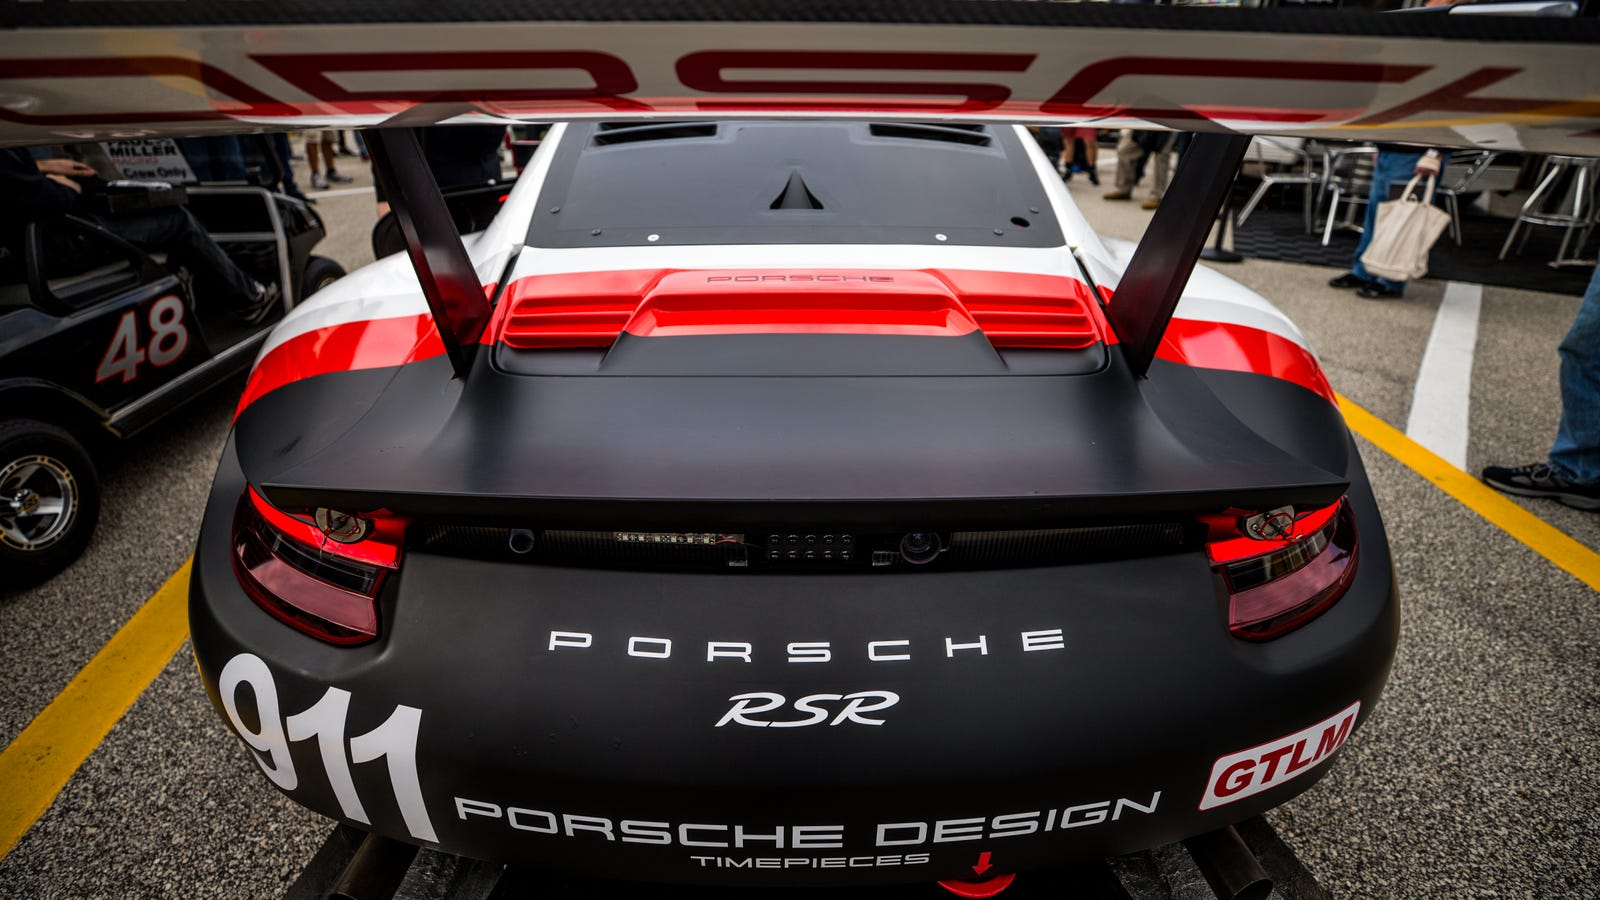 Please Don't Call The Porsche 911 With The Engine In The Middle 'Mid-Engine'